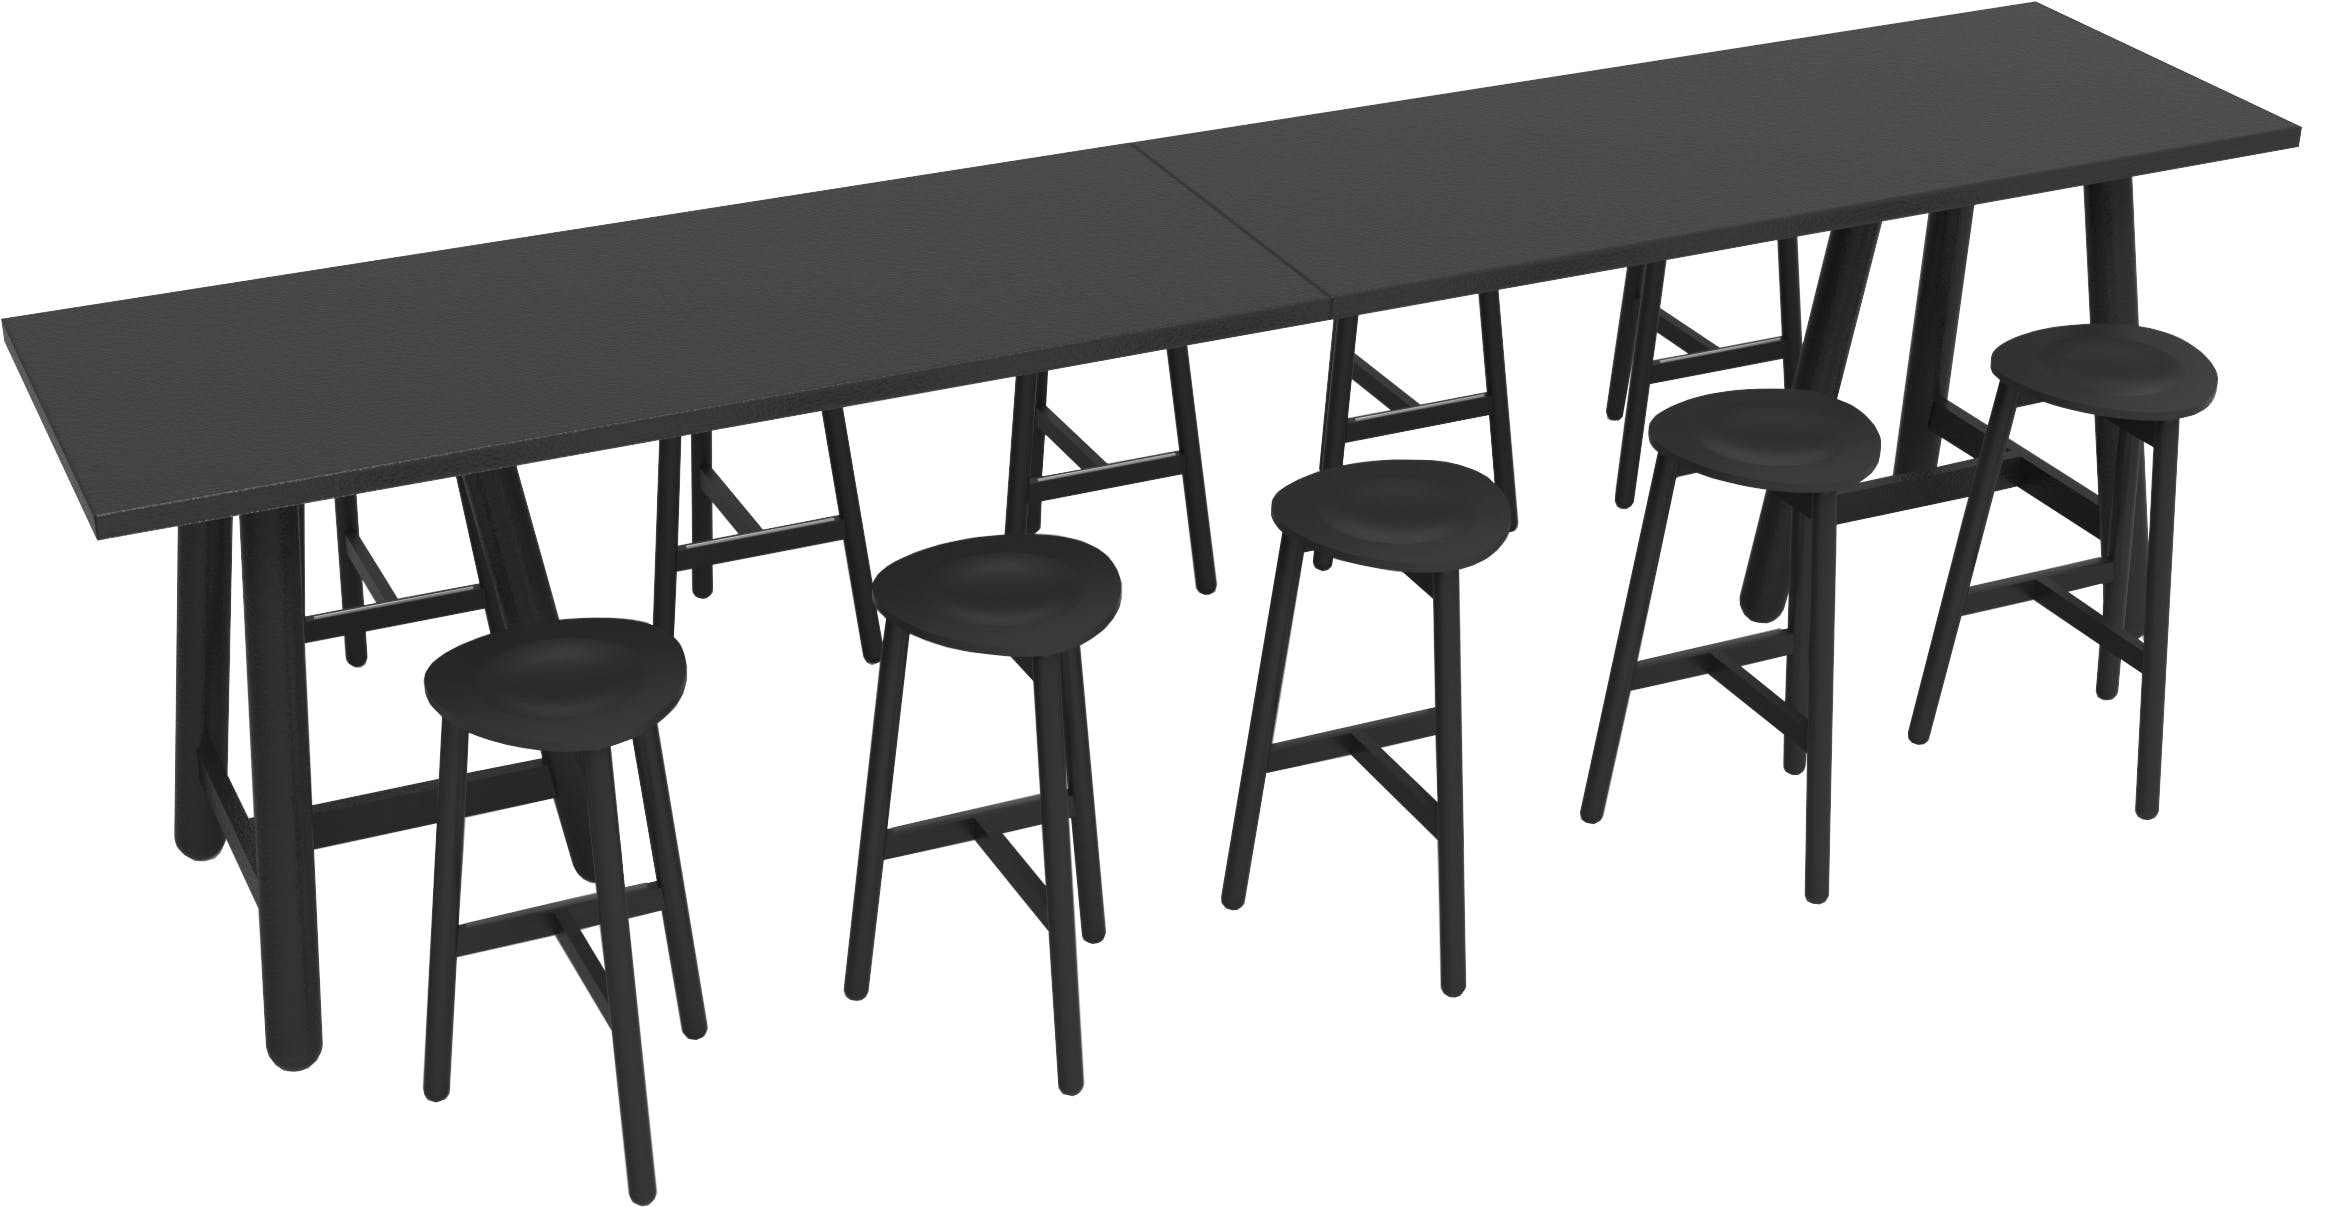 Dumbeenchtable